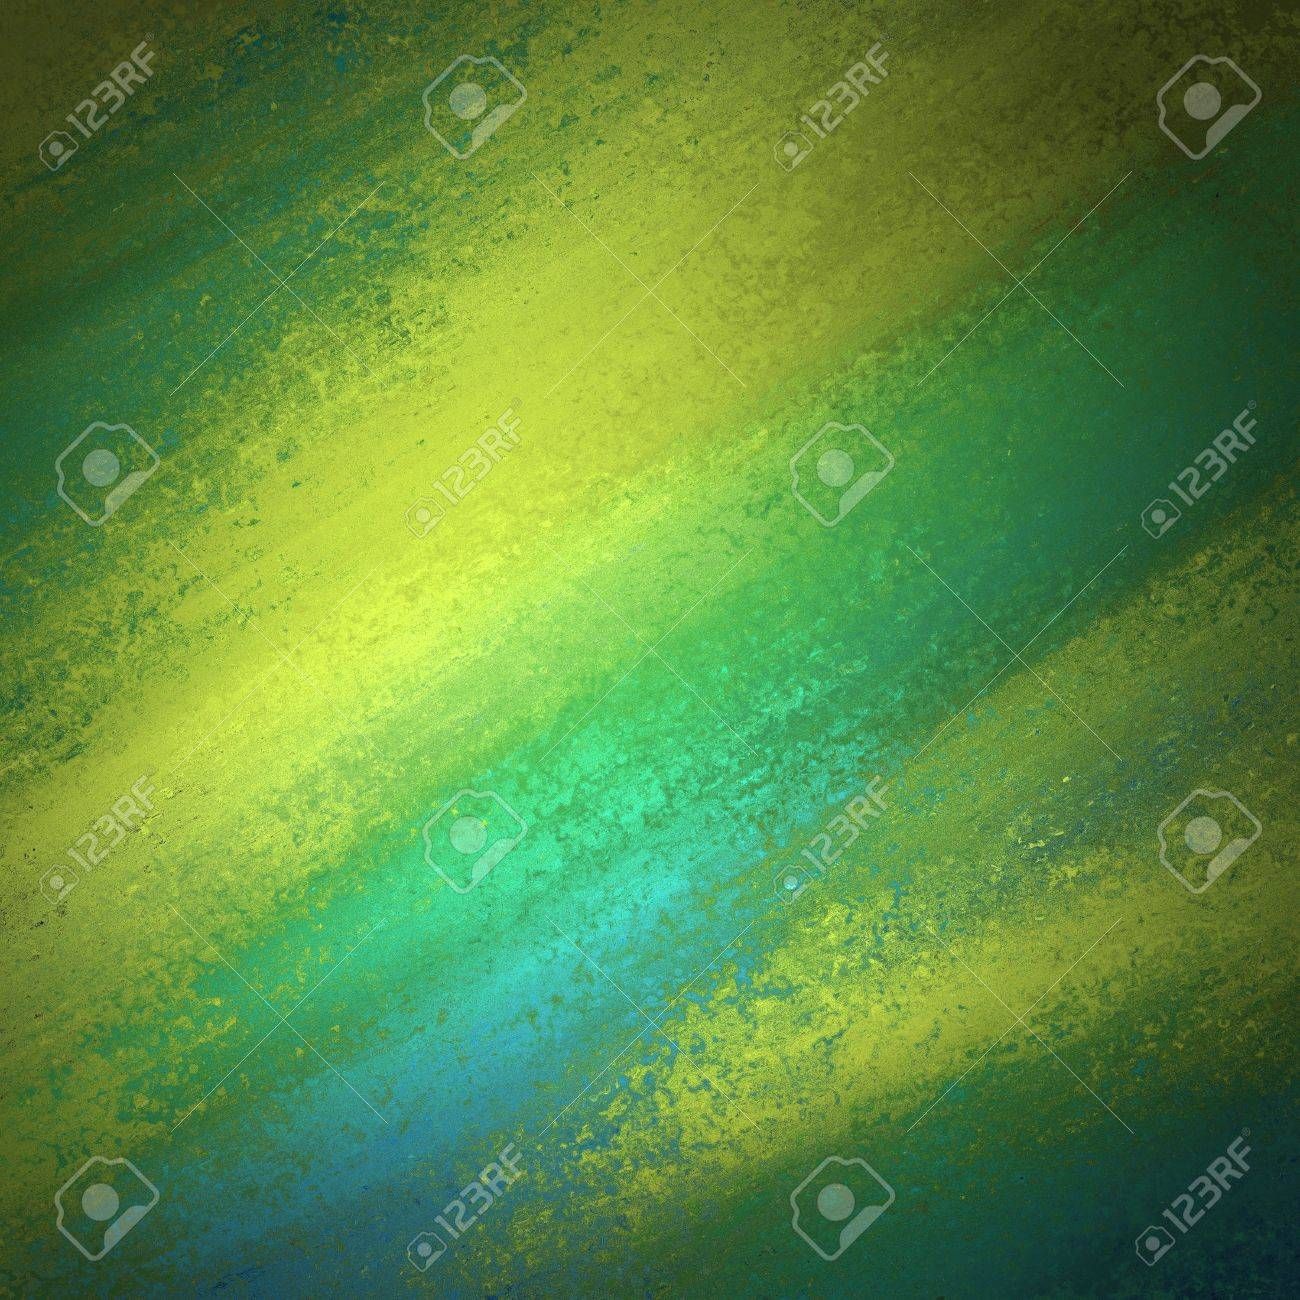 blue gold messy background grunge texture Stock Photo - 19412701